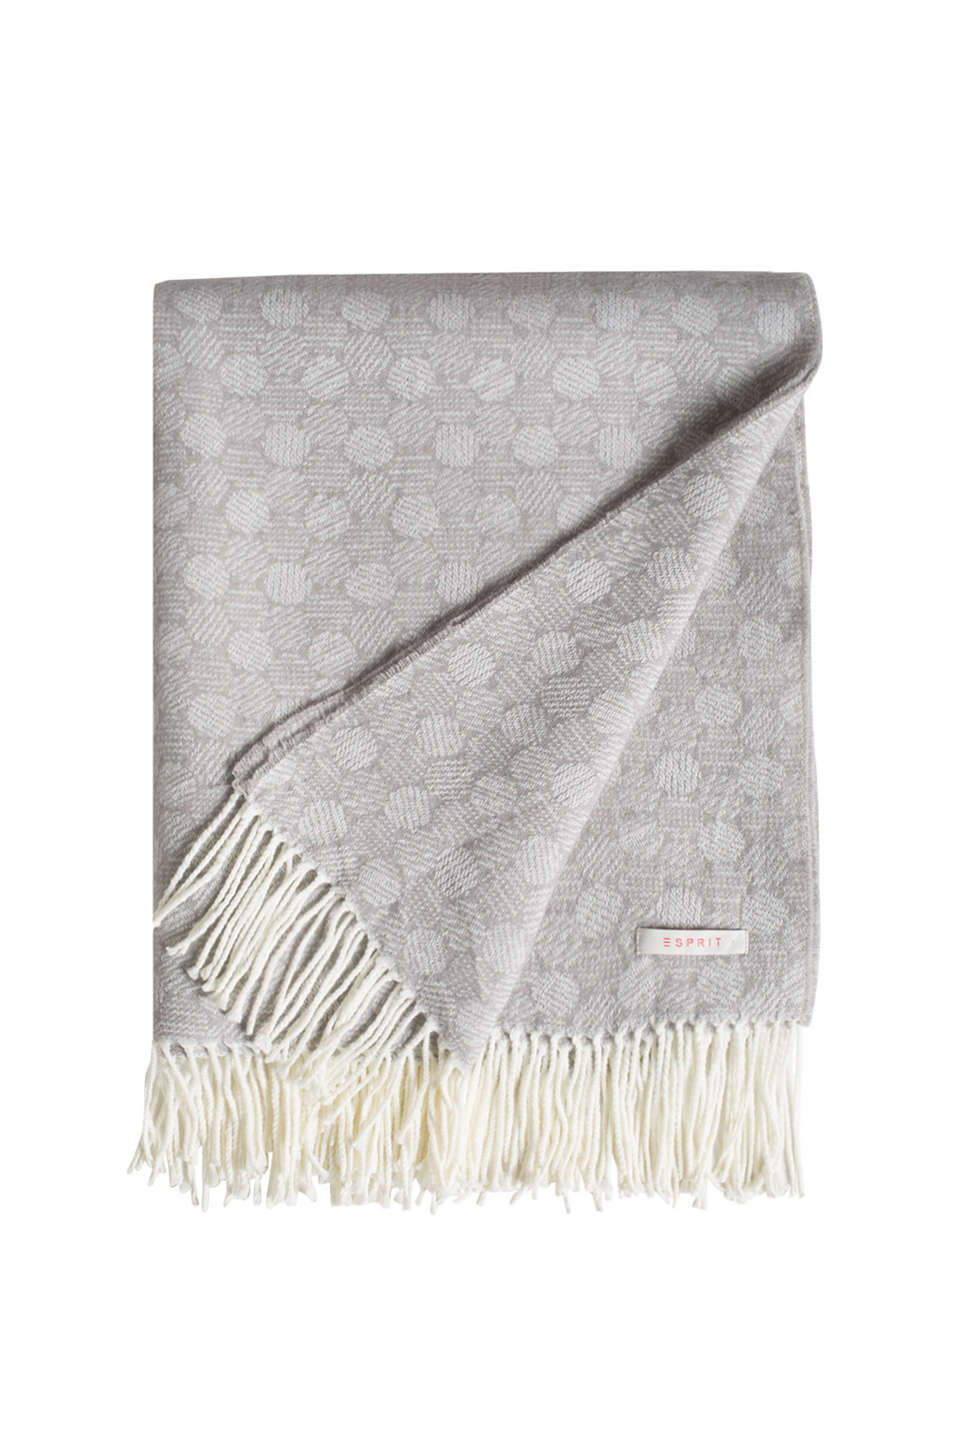 Esprit - Doro woven reversible blanket with fringing